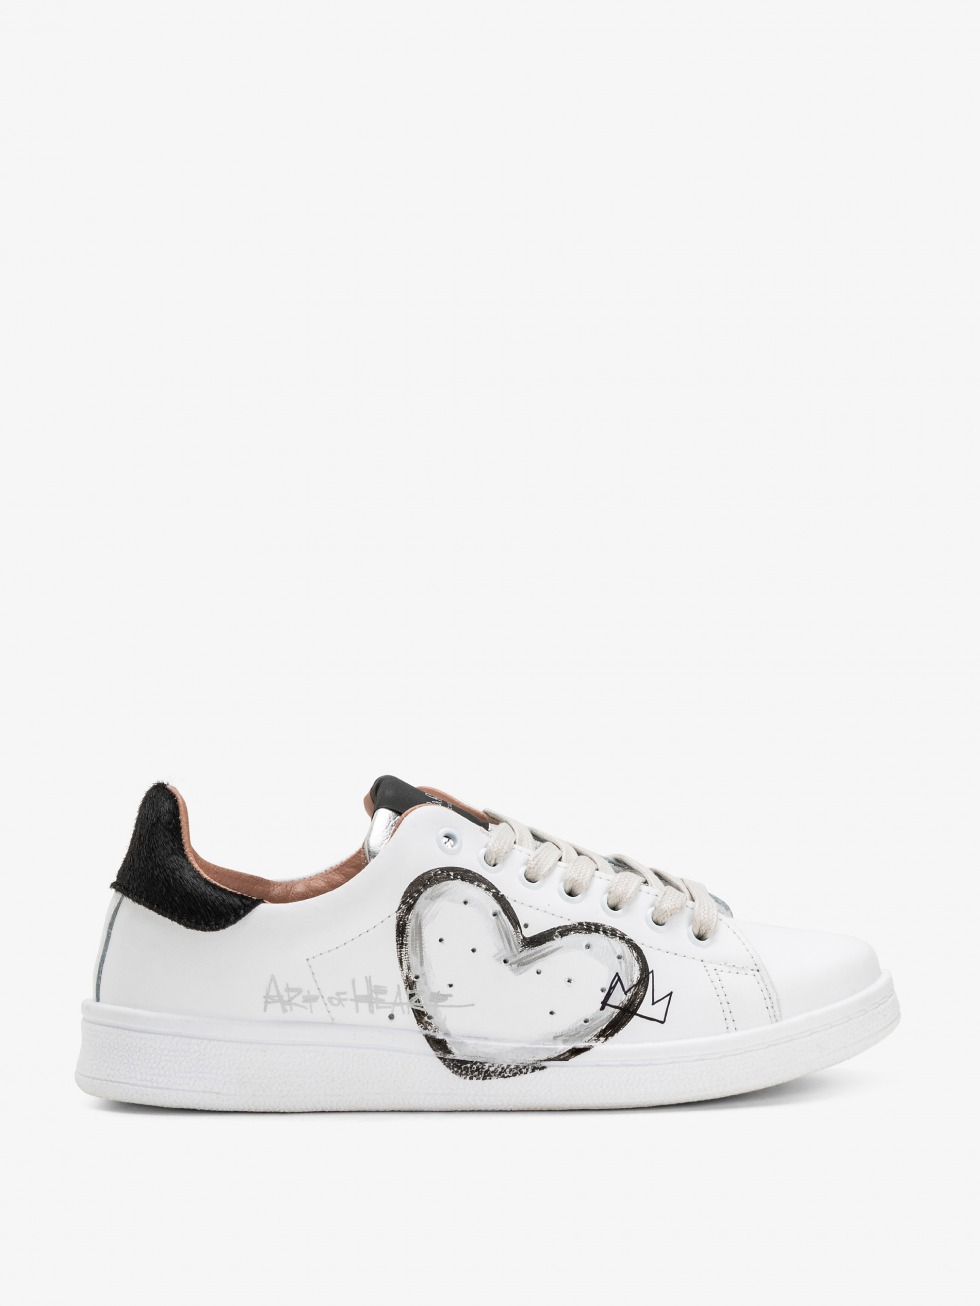 Daiquiri Sneakers - Black Art of Heart Silver